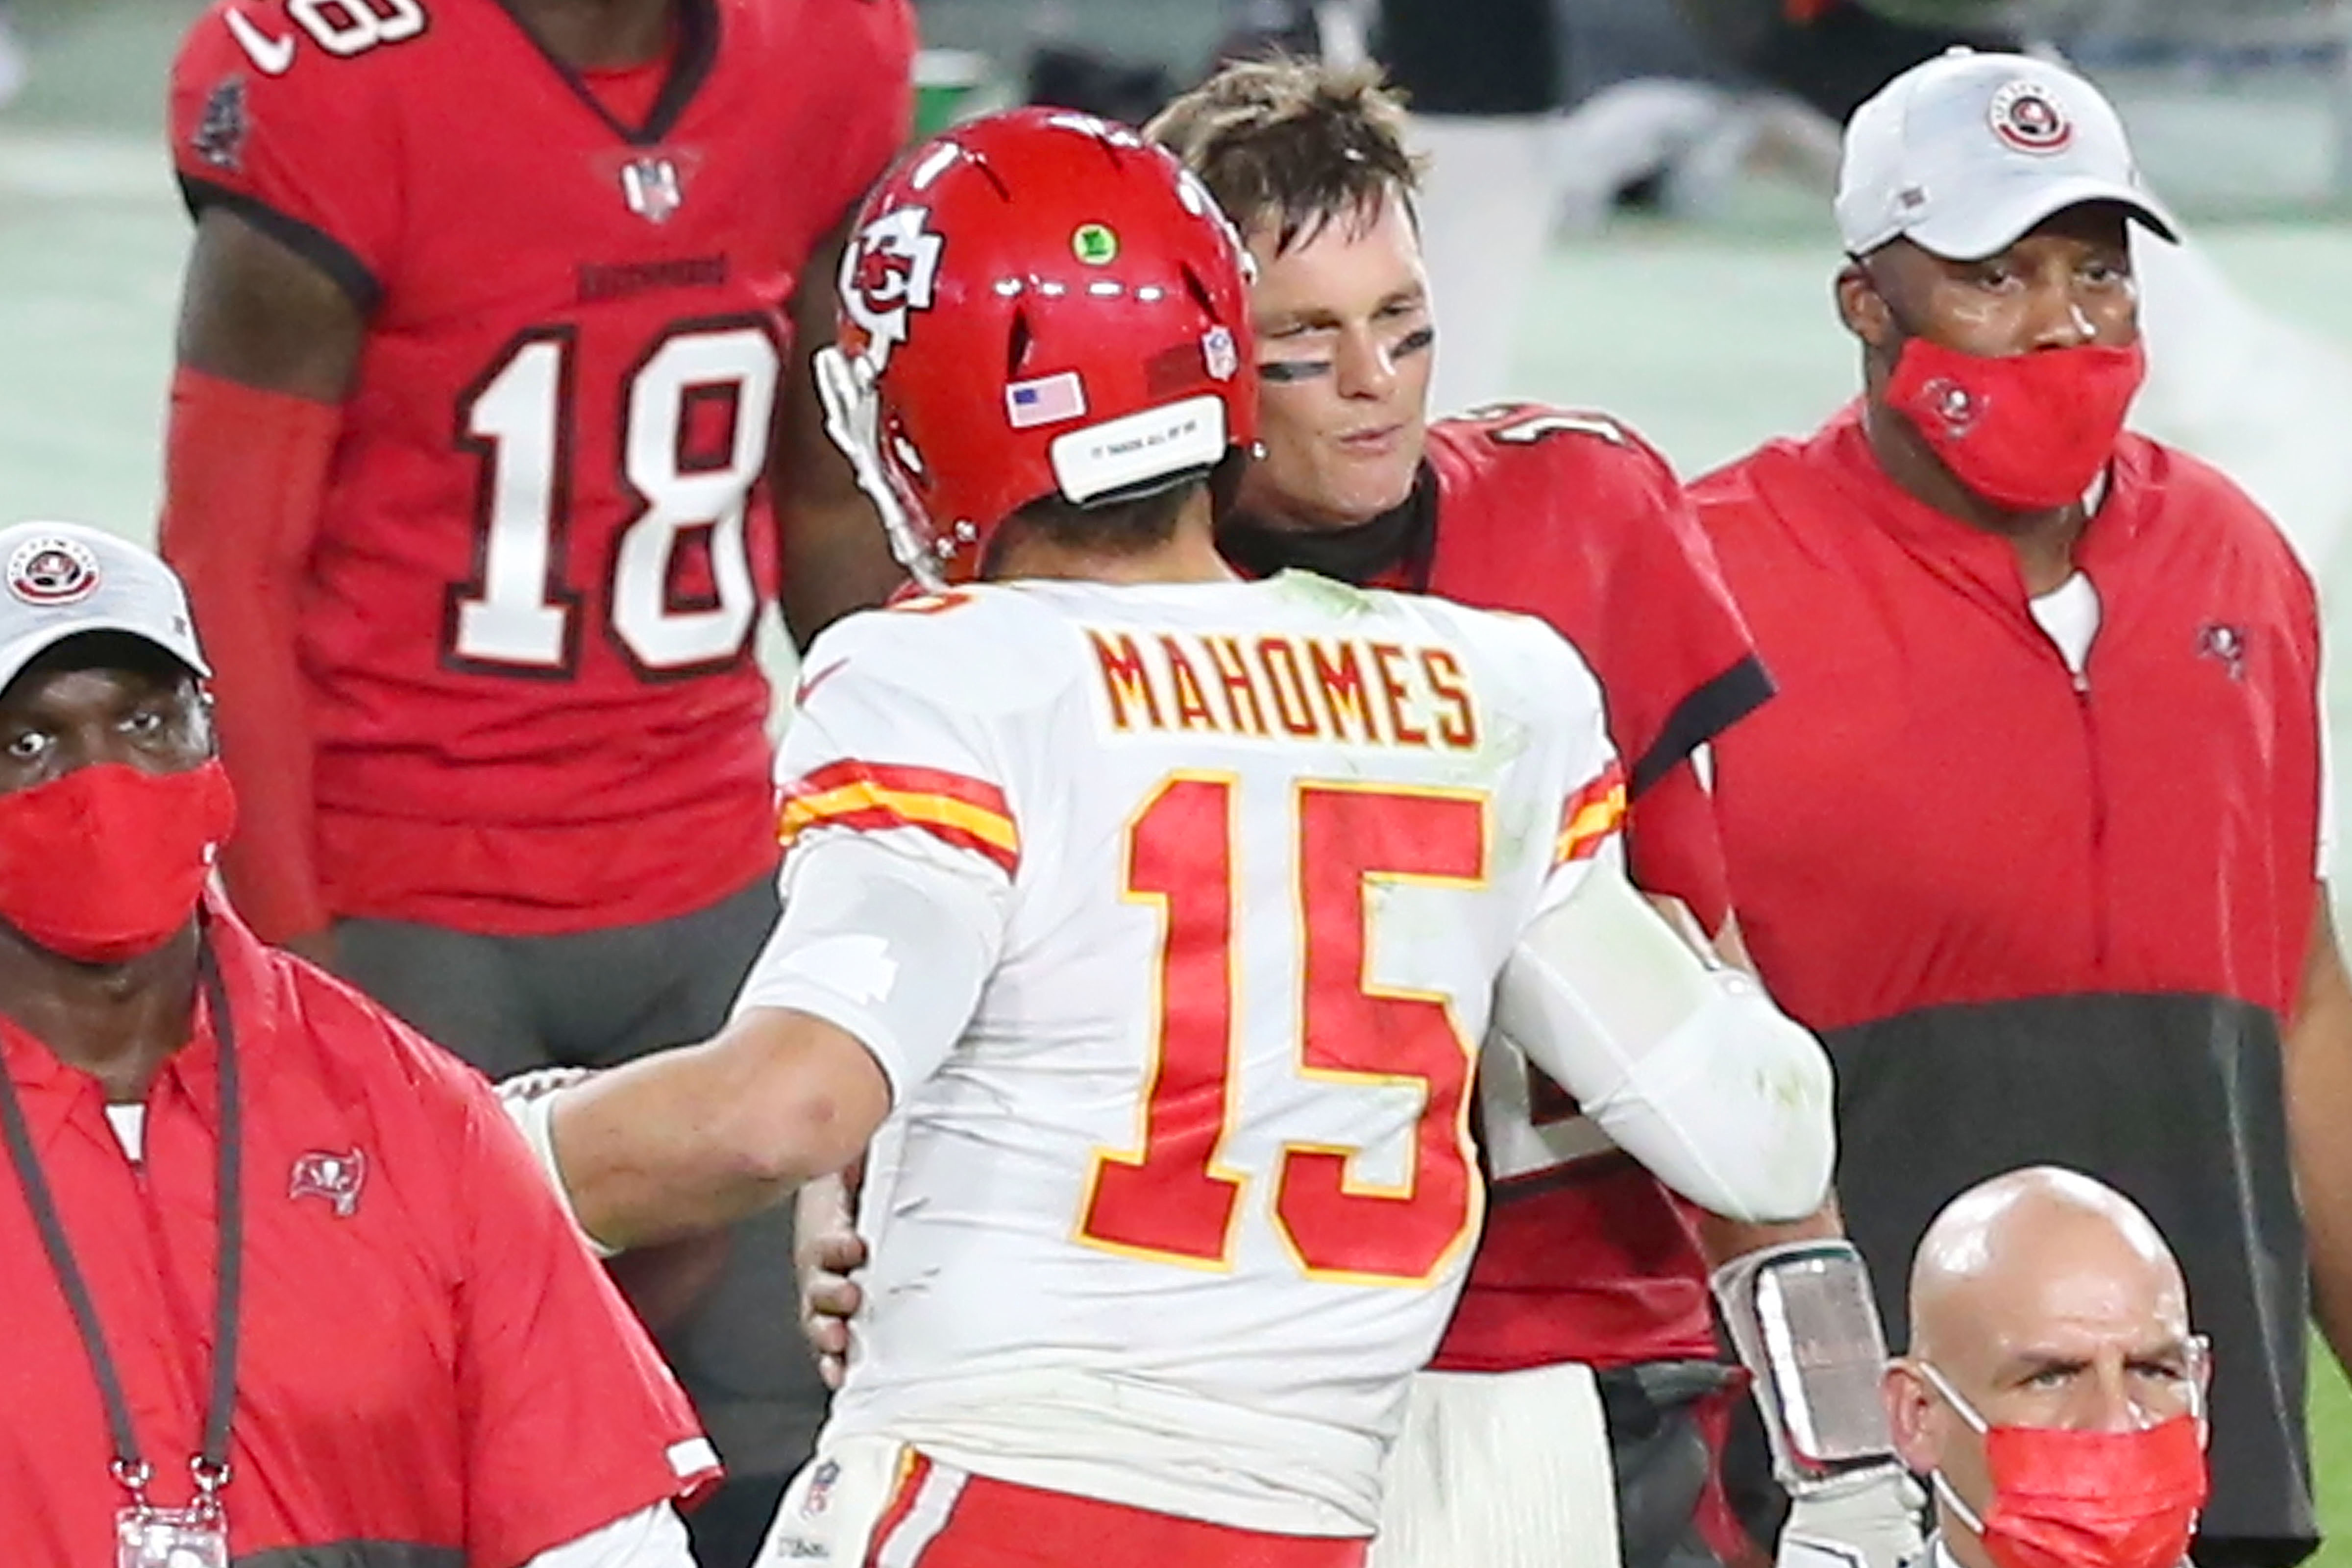 Tom Brady of the Buccaneers shakes hands with Patrick Mahomes of the Chiefs.